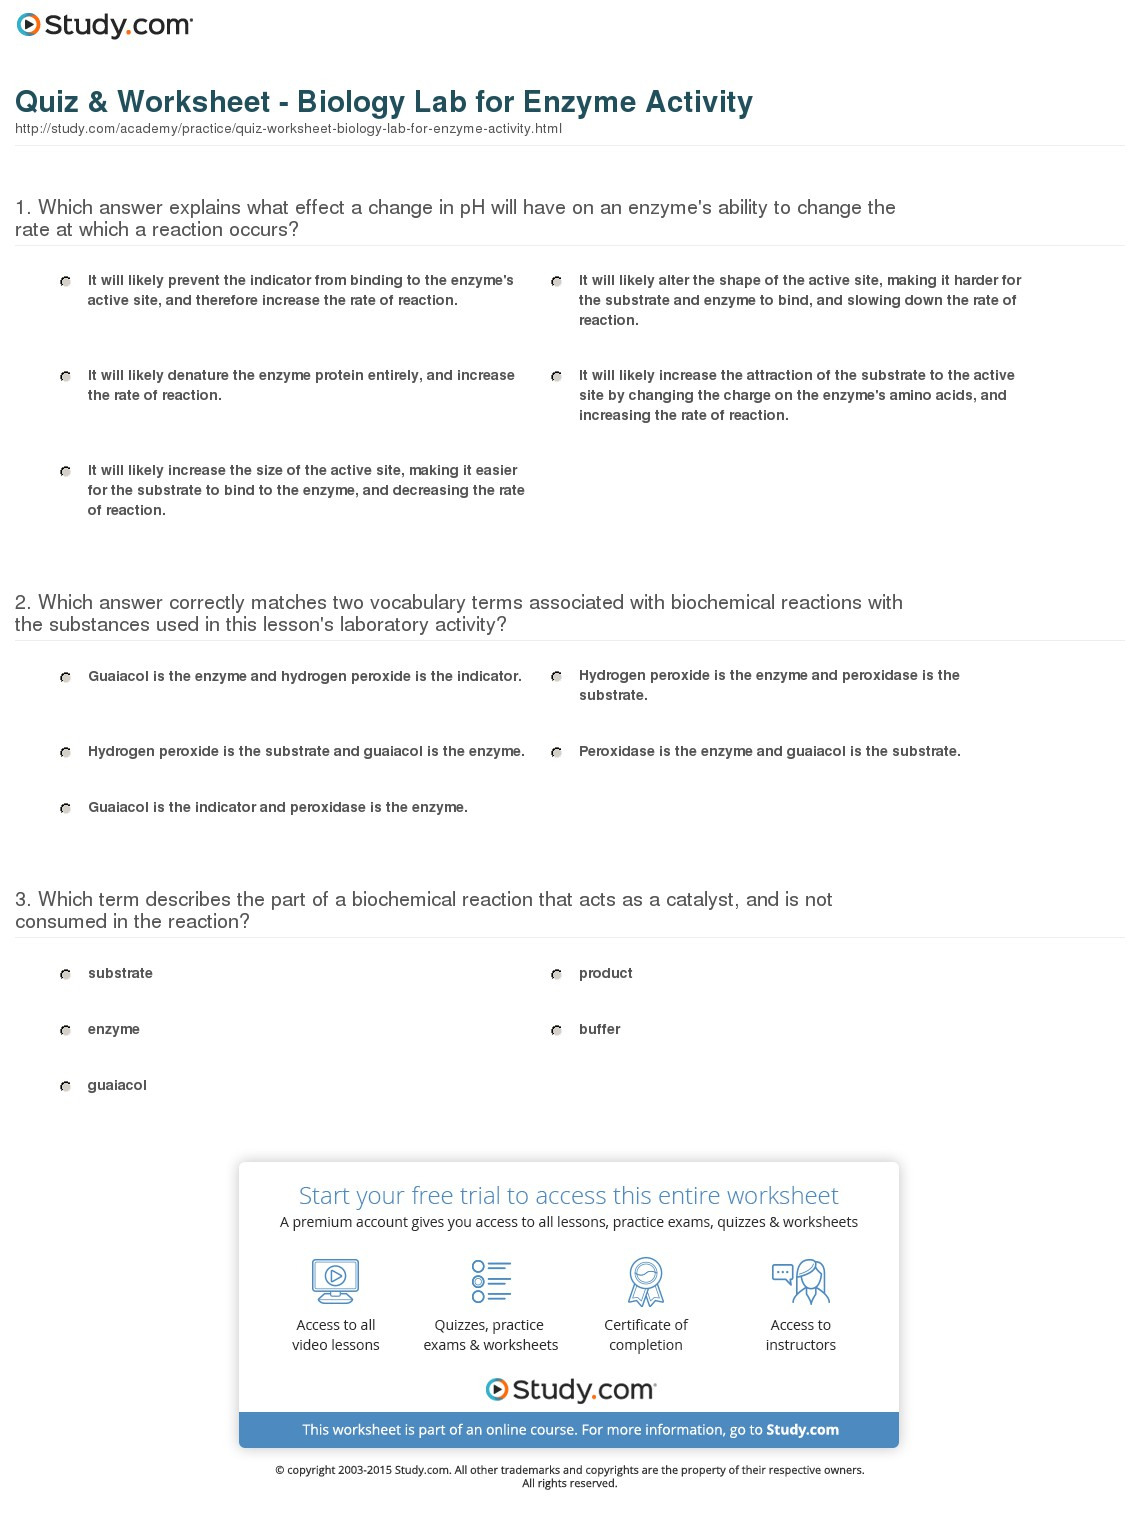 Quiz Worksheet Biology Lab For Enzyme Activity Study